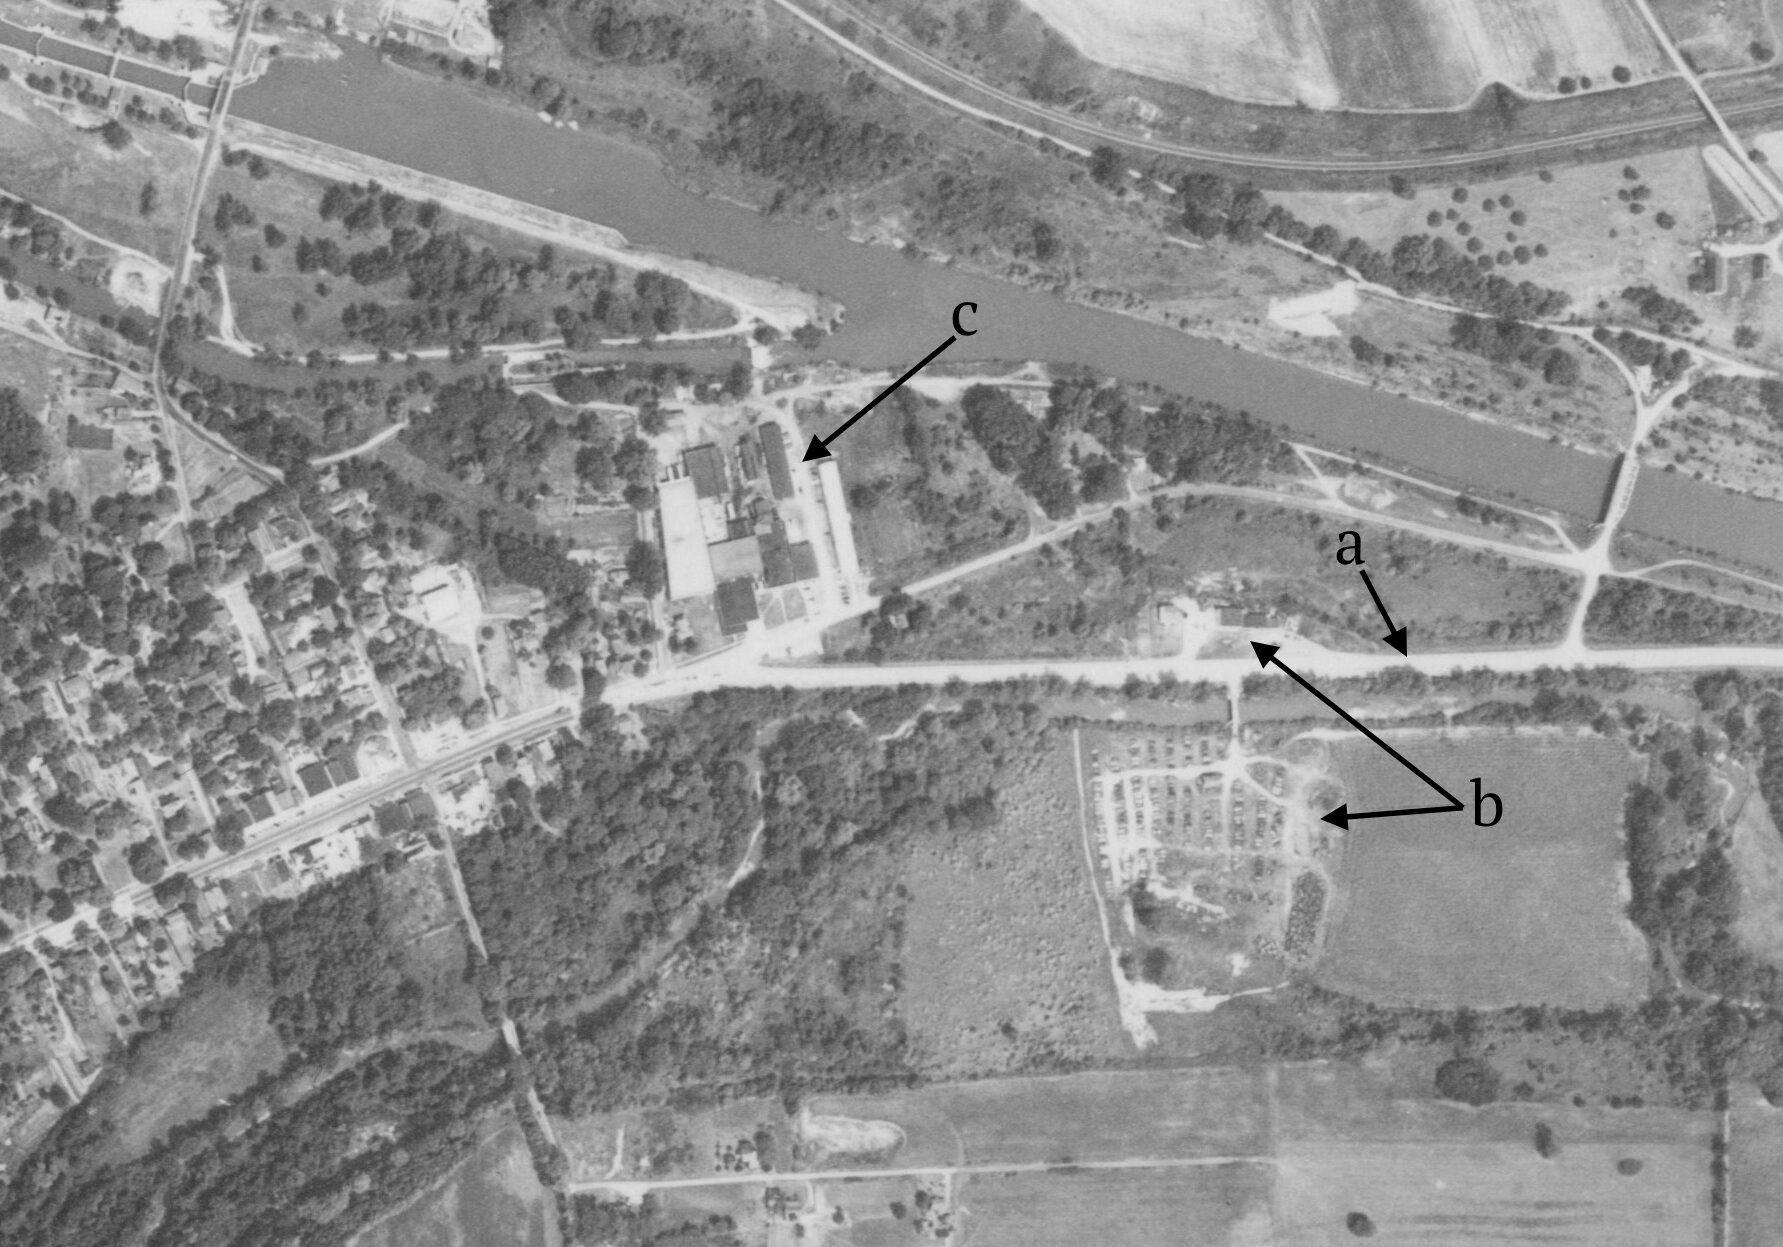 An aerial view of Route 31 in 1954